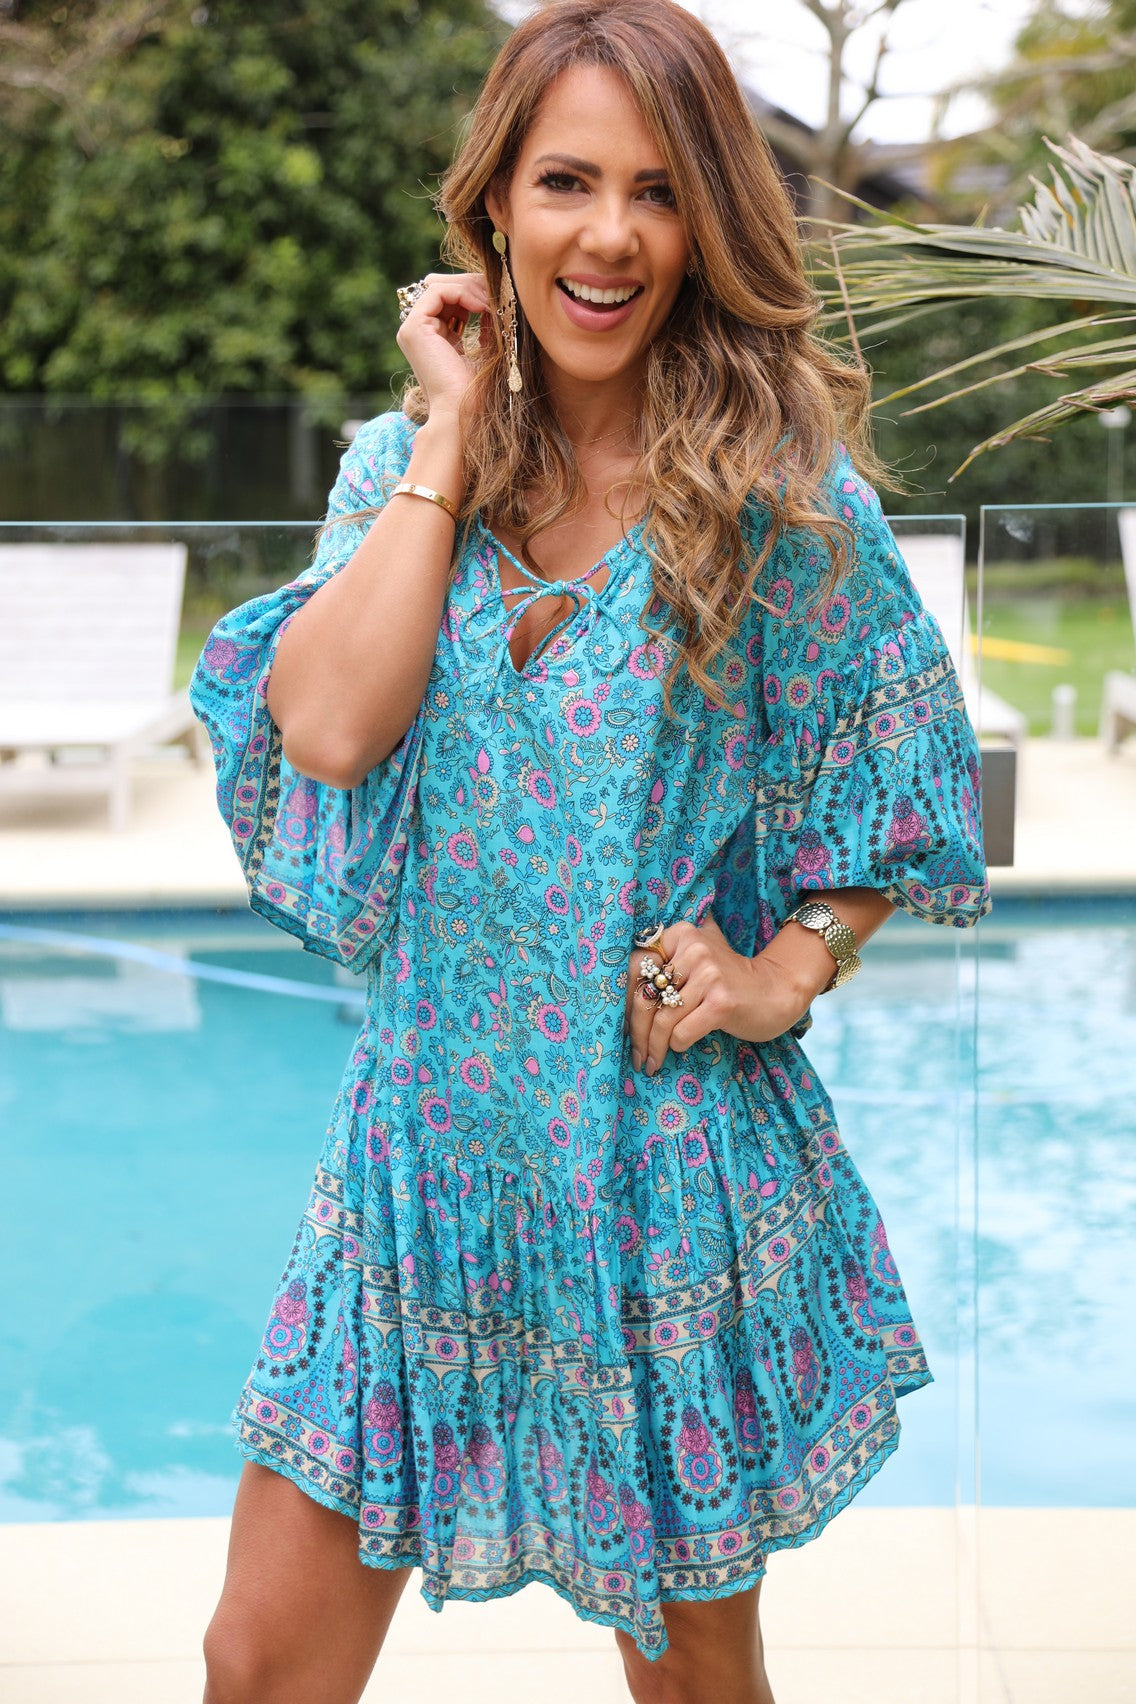 Beach Chic Dress -  Small Turquoise Floral Print